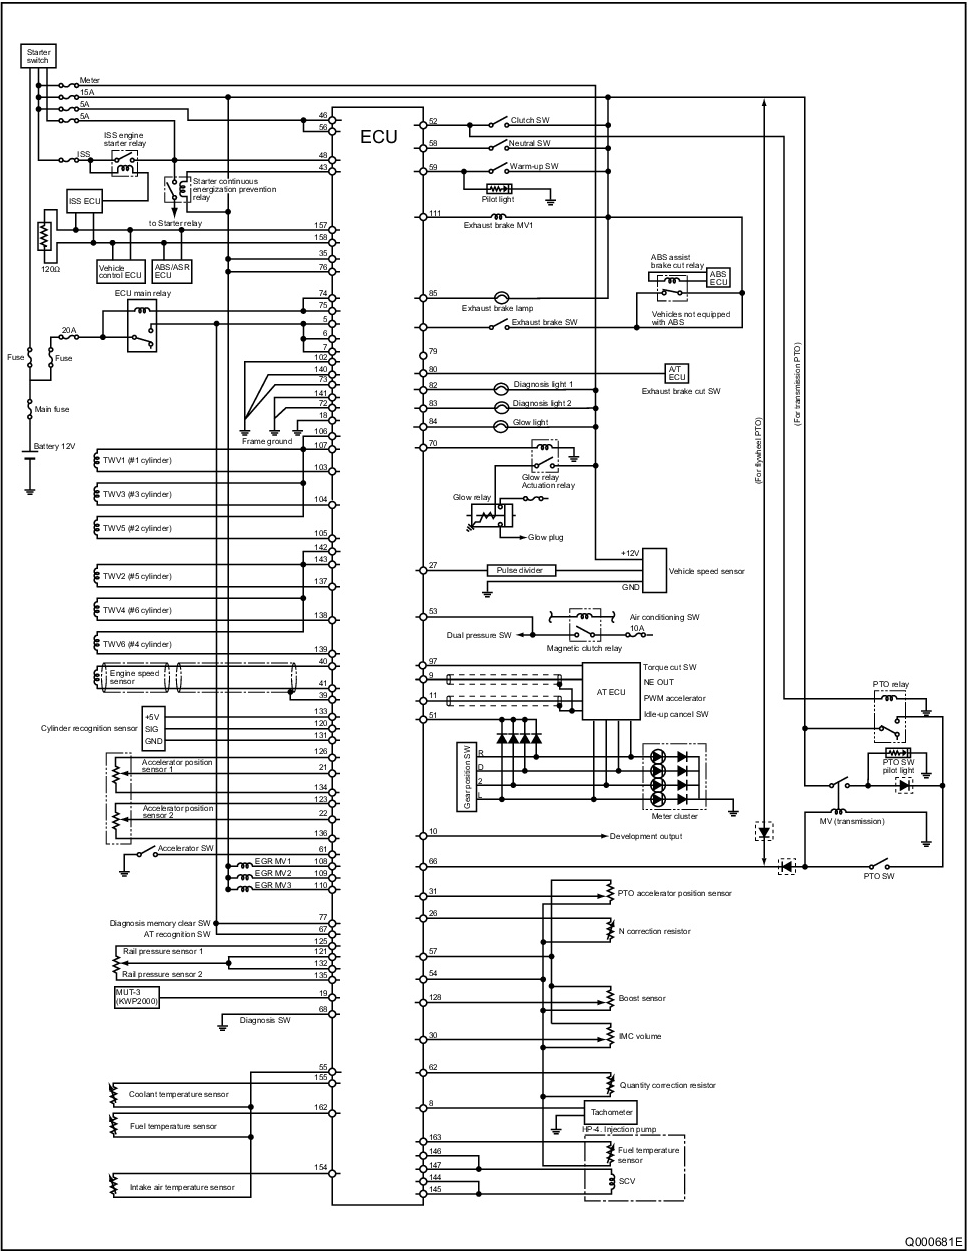 Mitsubishi Fuso Fighter ECU External Wiring Diagram